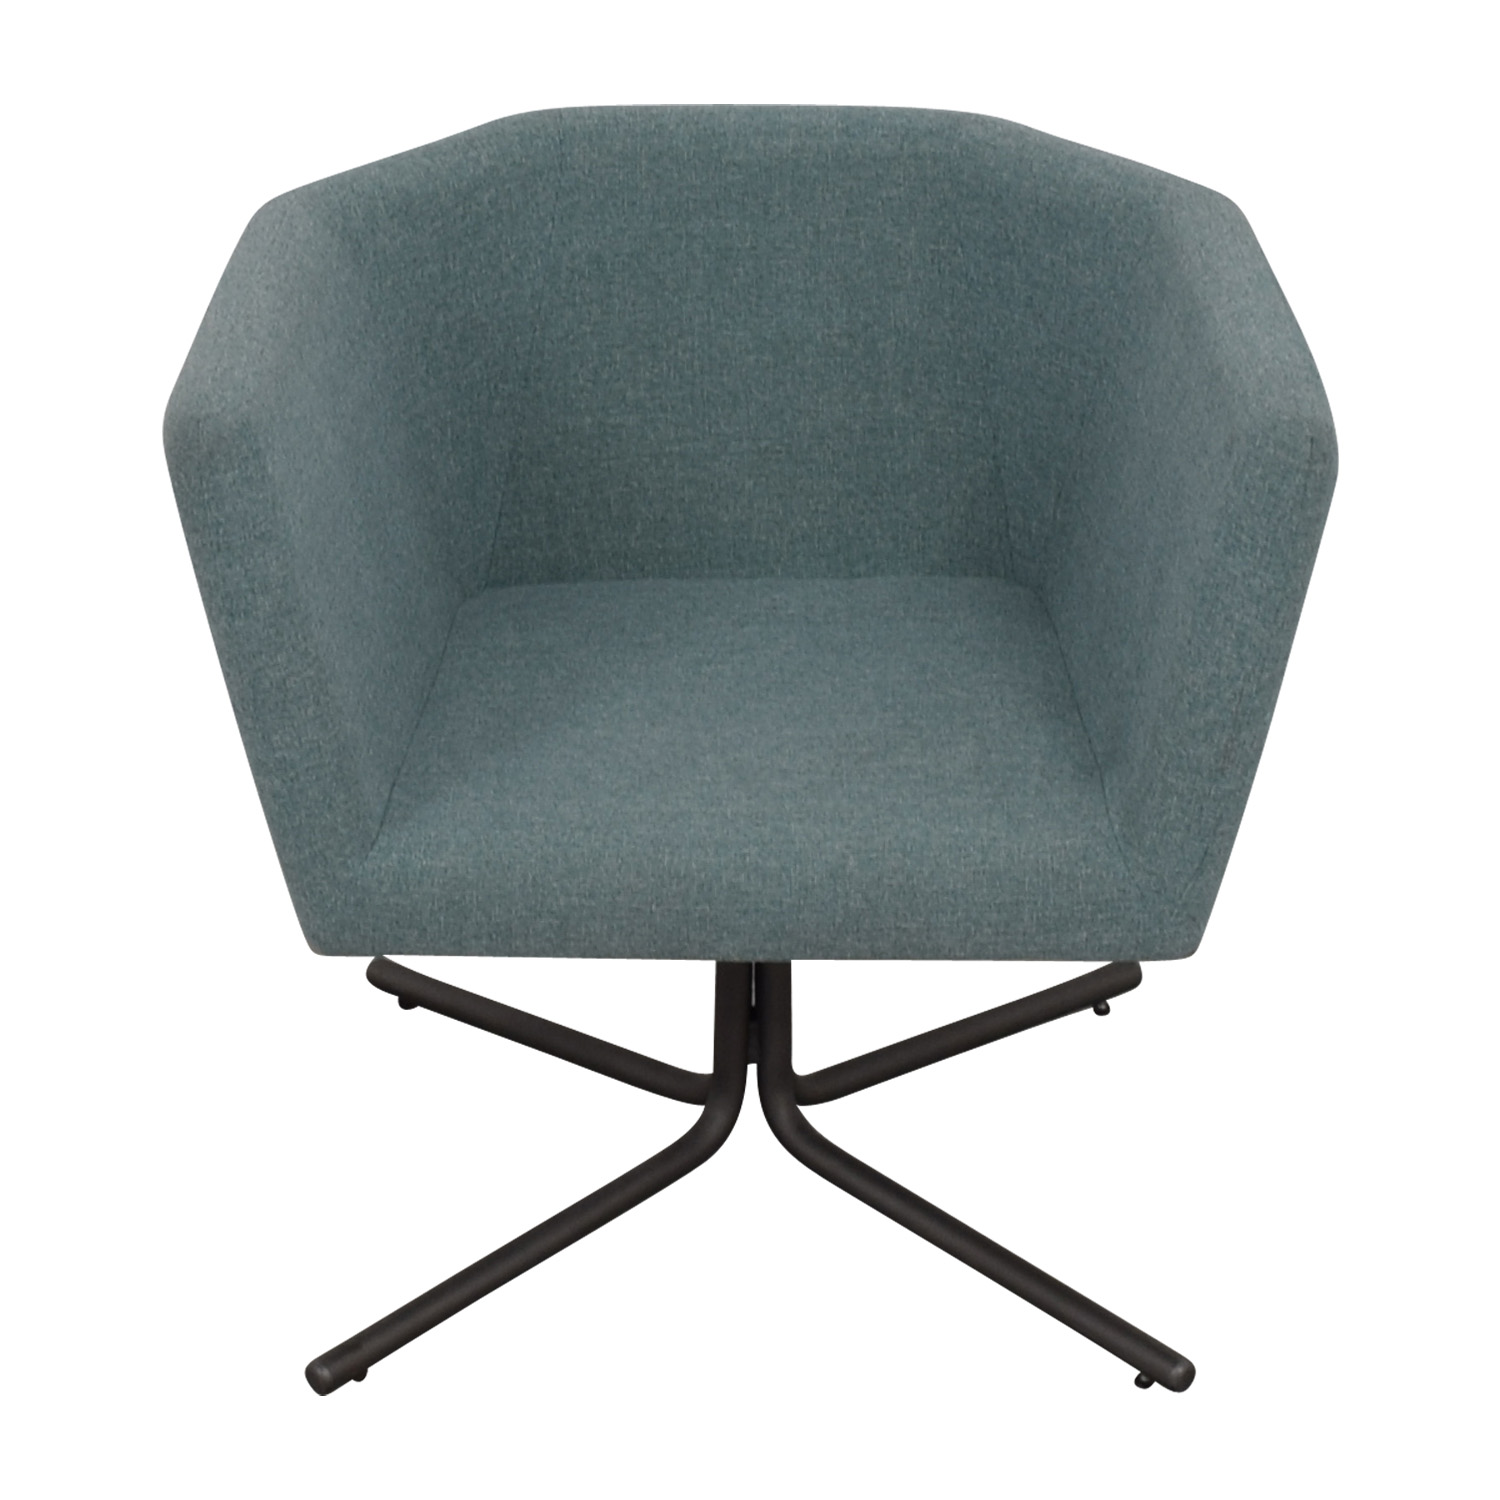 CB2 CB2 Facetta Cyan Chair second hand